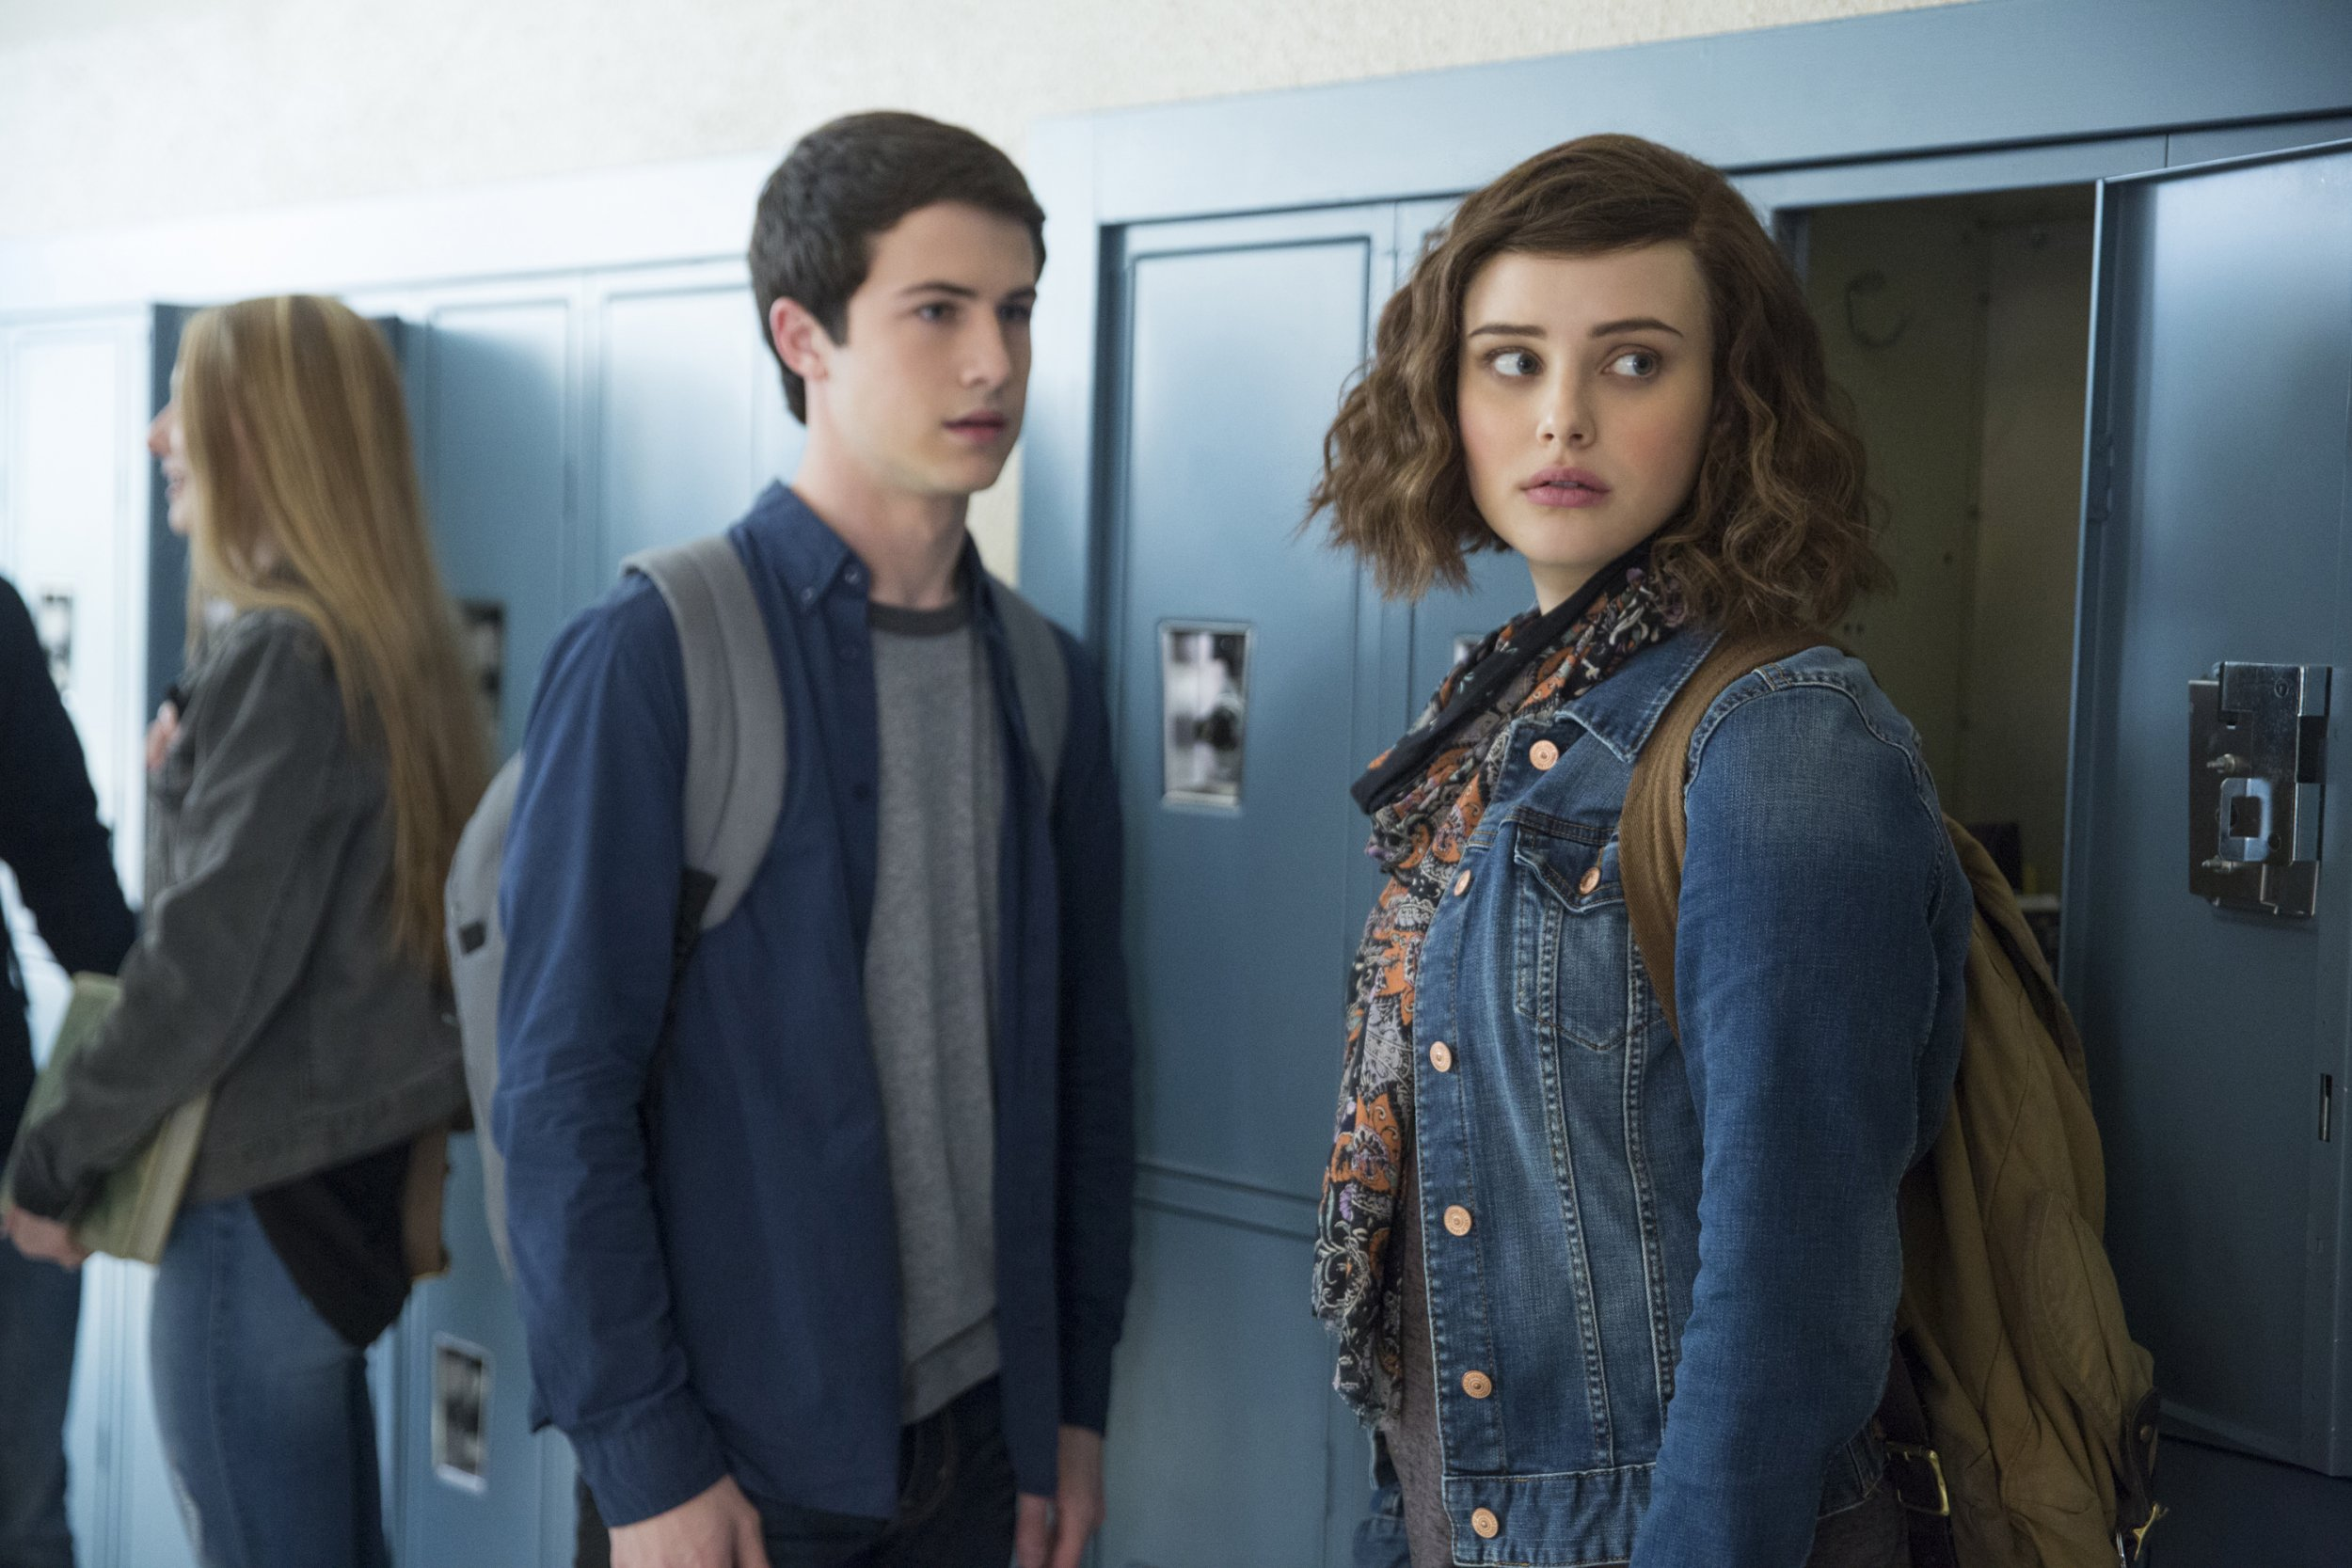 05_02_13_Reasons_suicide_prevention